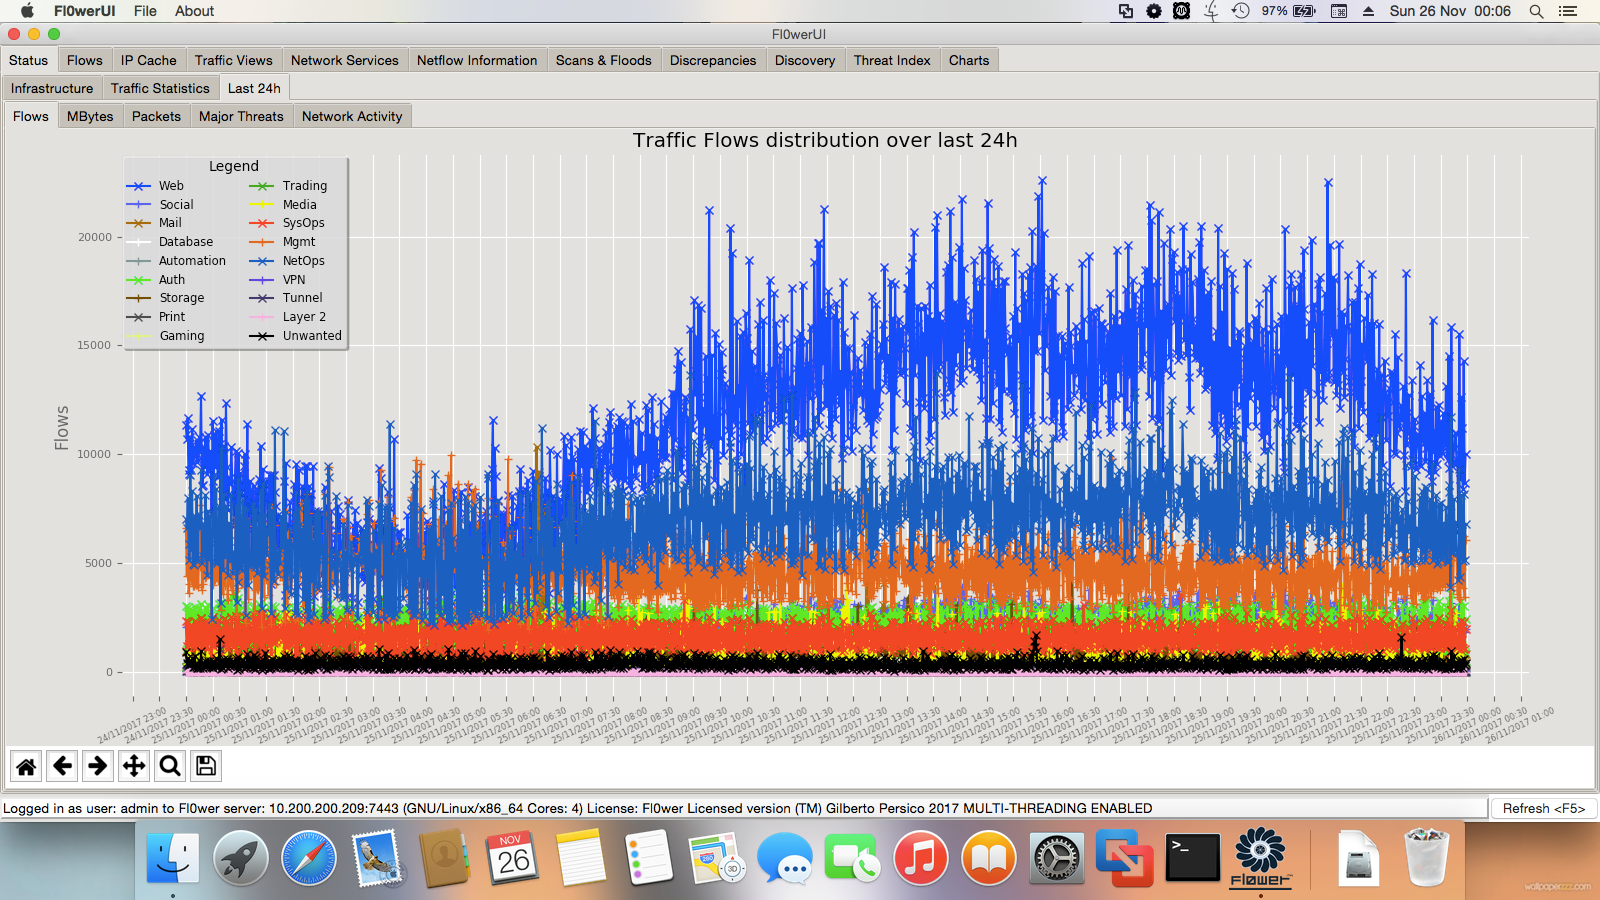 Last 24h Flows with 1 minute resolution